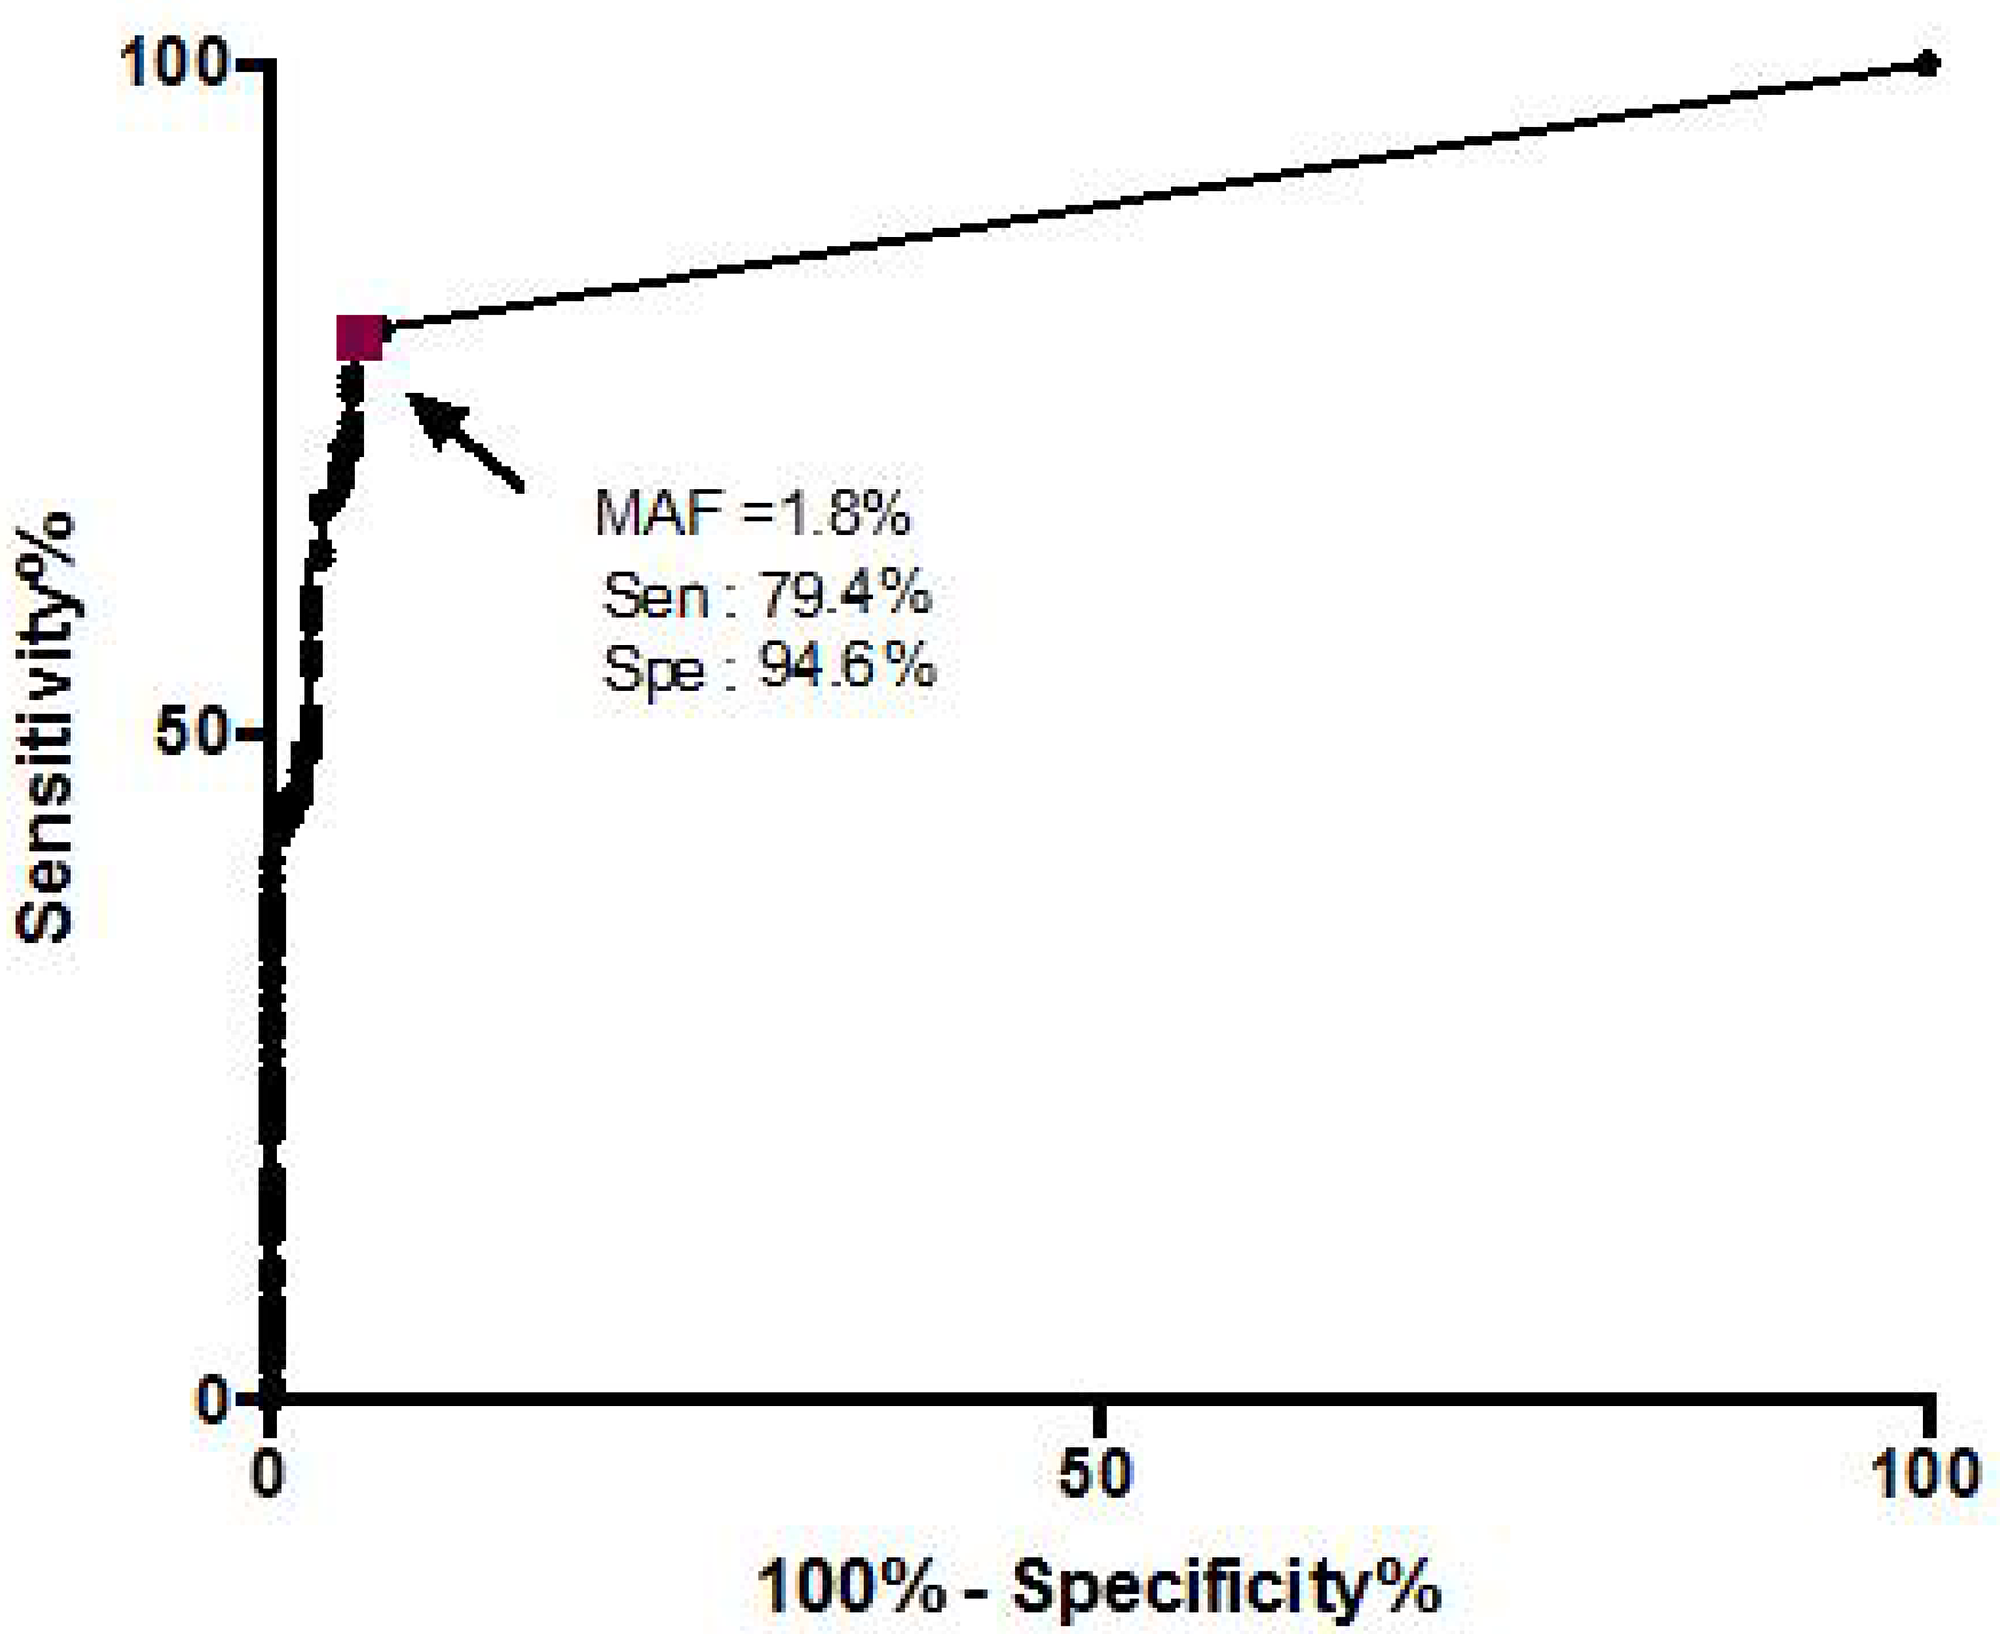 Receiver operating characteristic (ROC) curve plotted with KRAS mutation allele frequency (MAF) in pancreatic cystic lesions classified as either mucinous or non-mucinous based on the clinical algorithm.